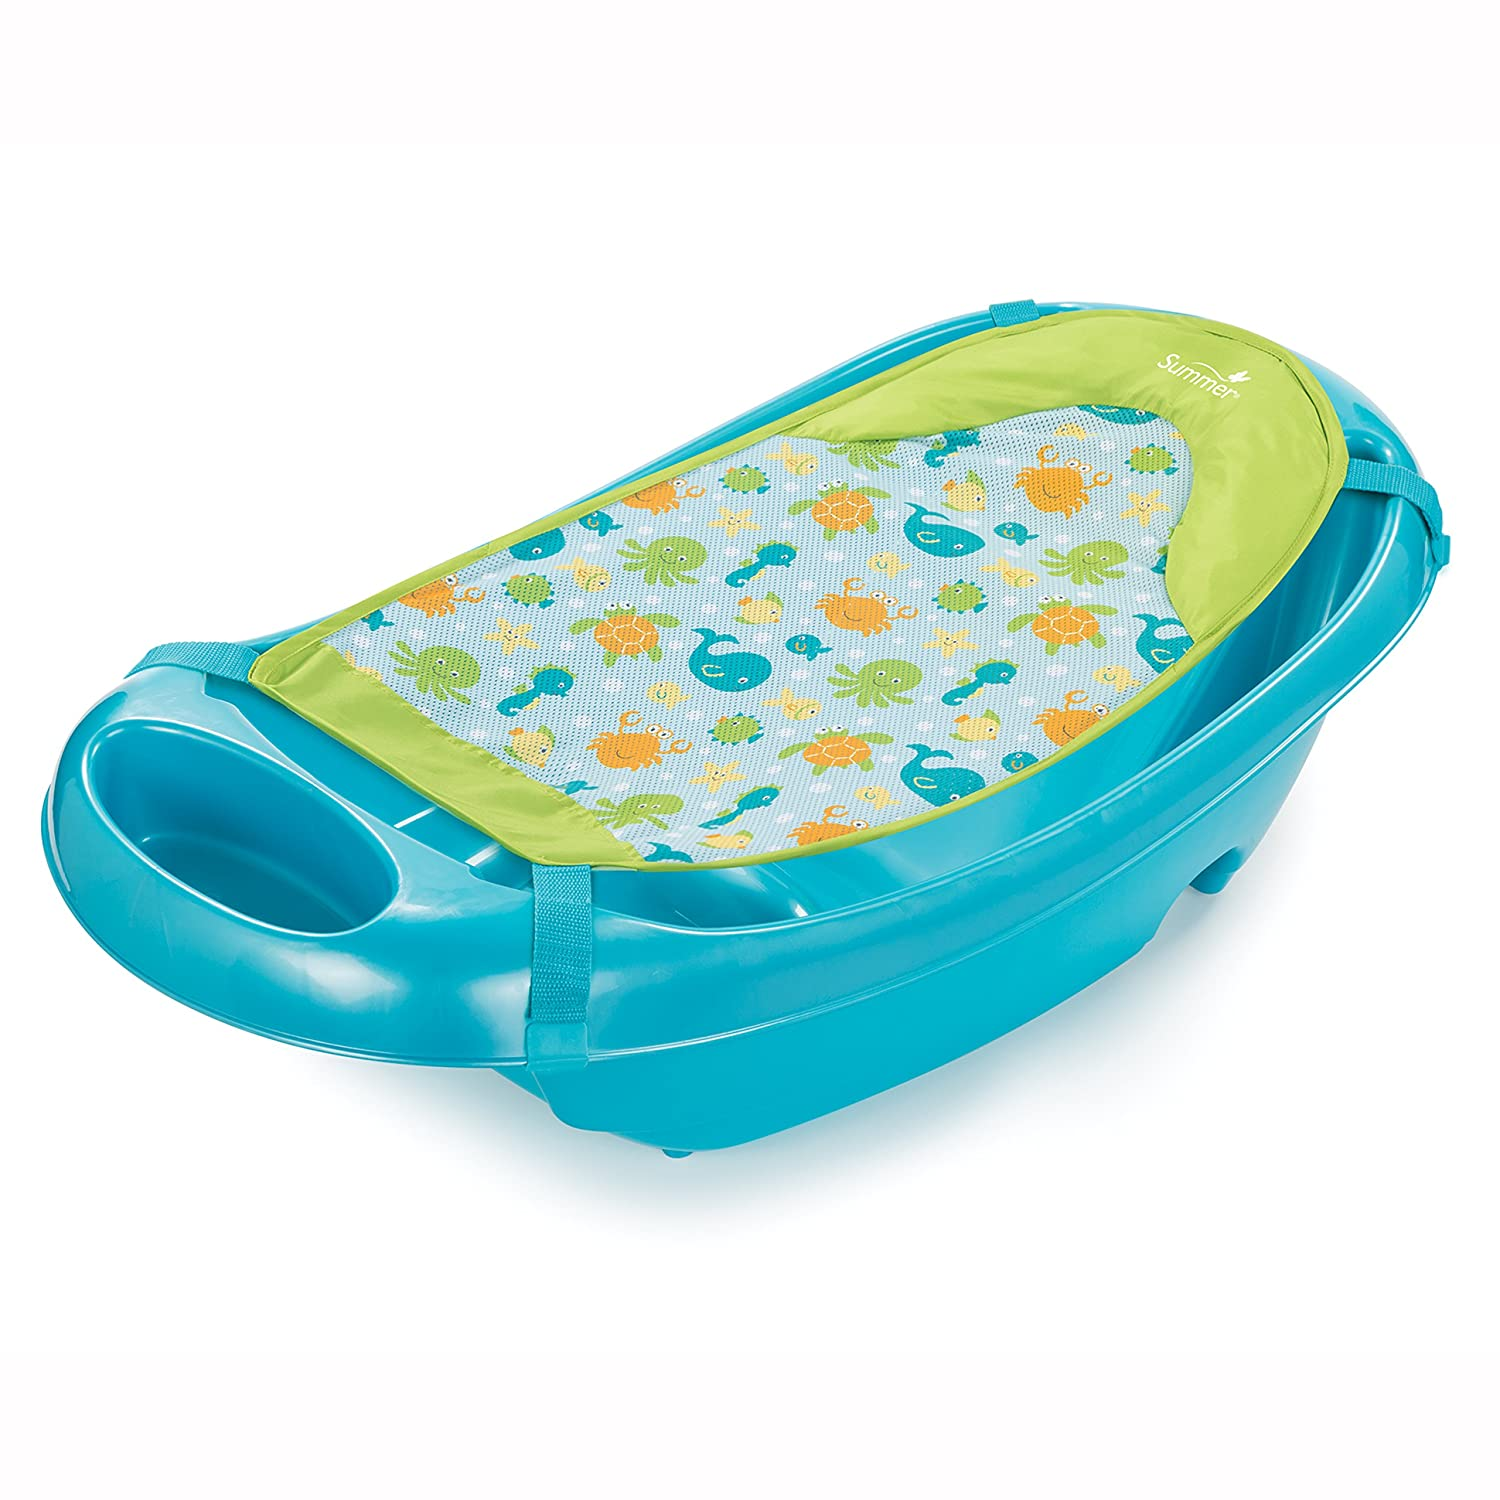 Amazon.com : Summer Infant Splish \'n Splash Newborn to Toddler Tub ...